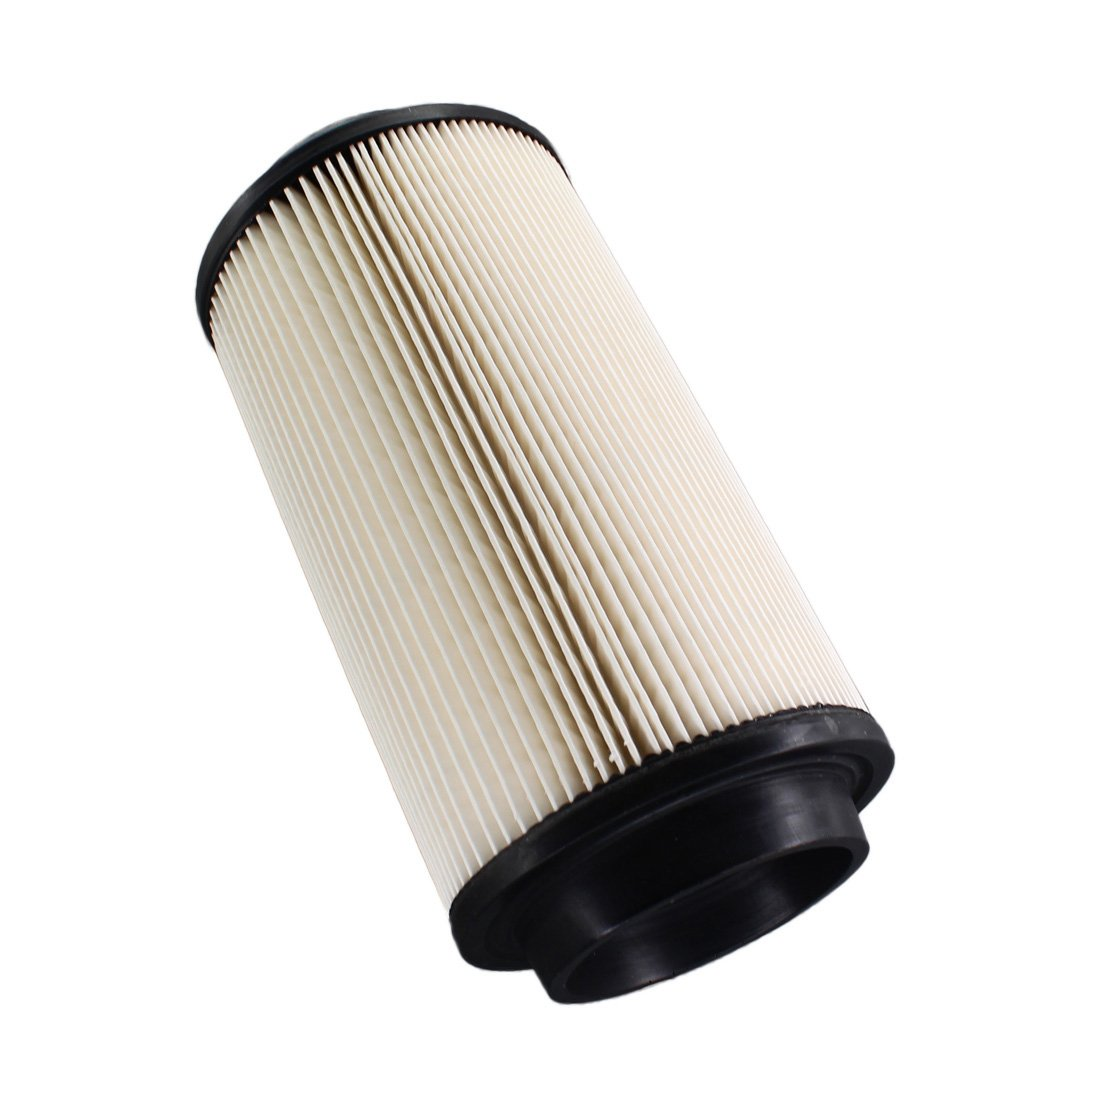 Polaris Sportsman 335 Fuel Filter Uspeeda Replace Air Cleaner For Scrambler Magnum Spark Plug 1111x1111